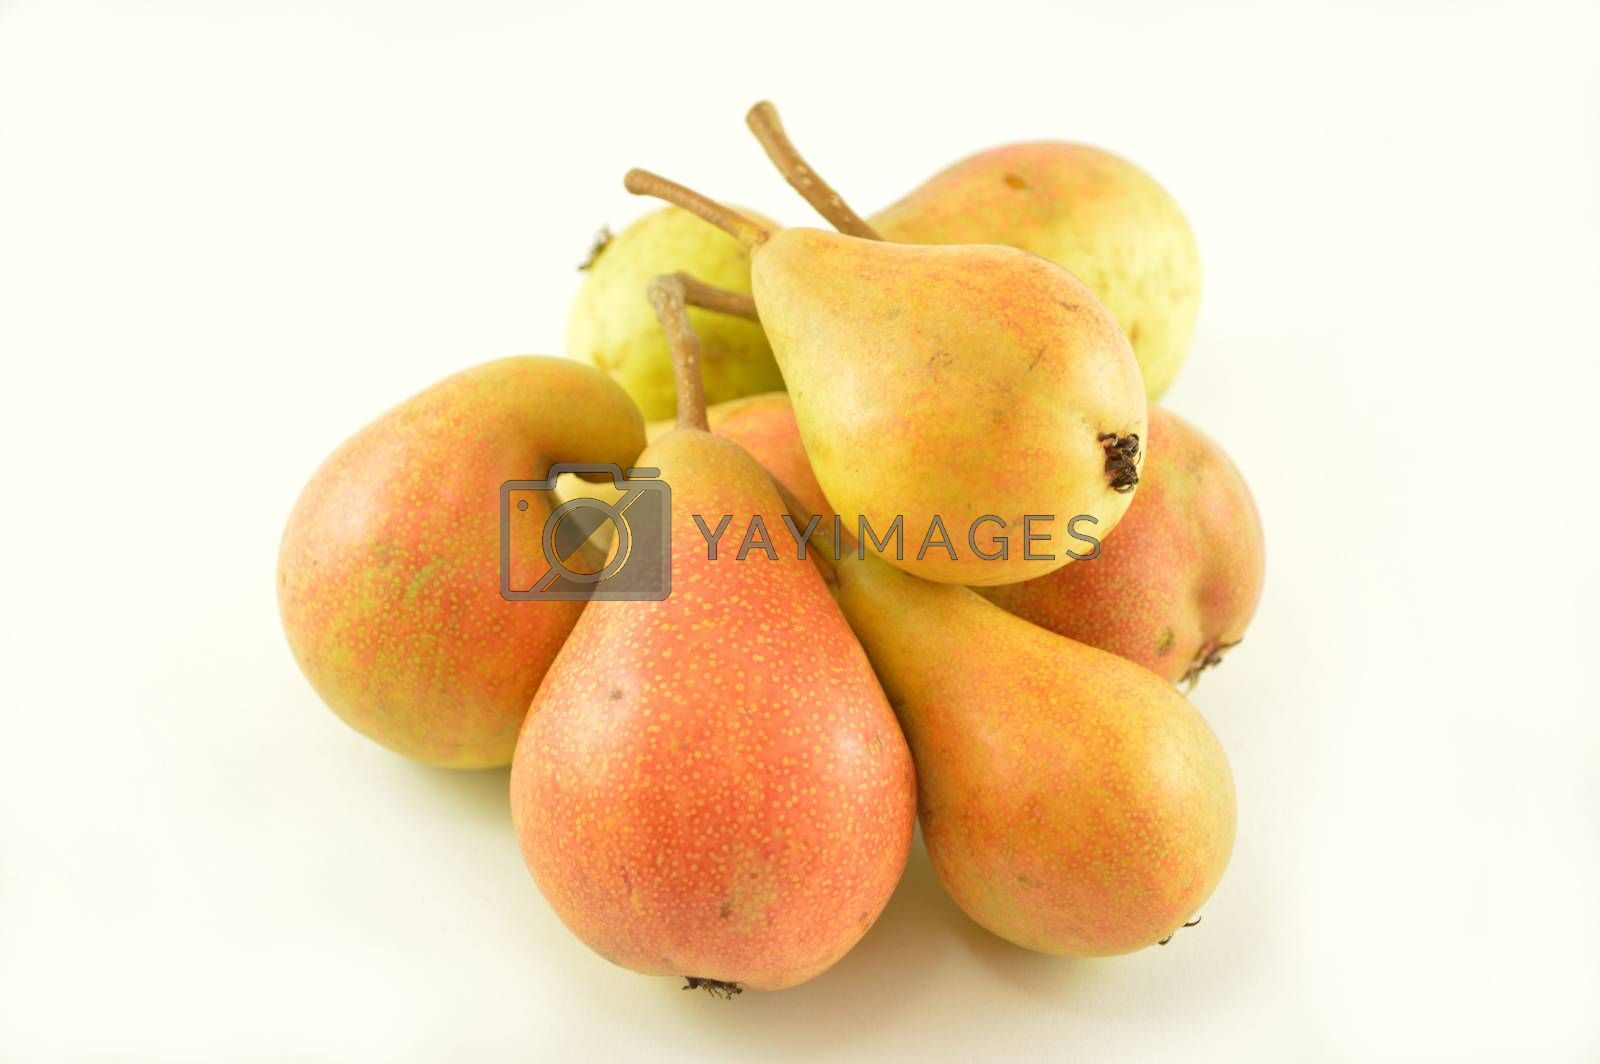 Pears in a bowl isolated on a white background.